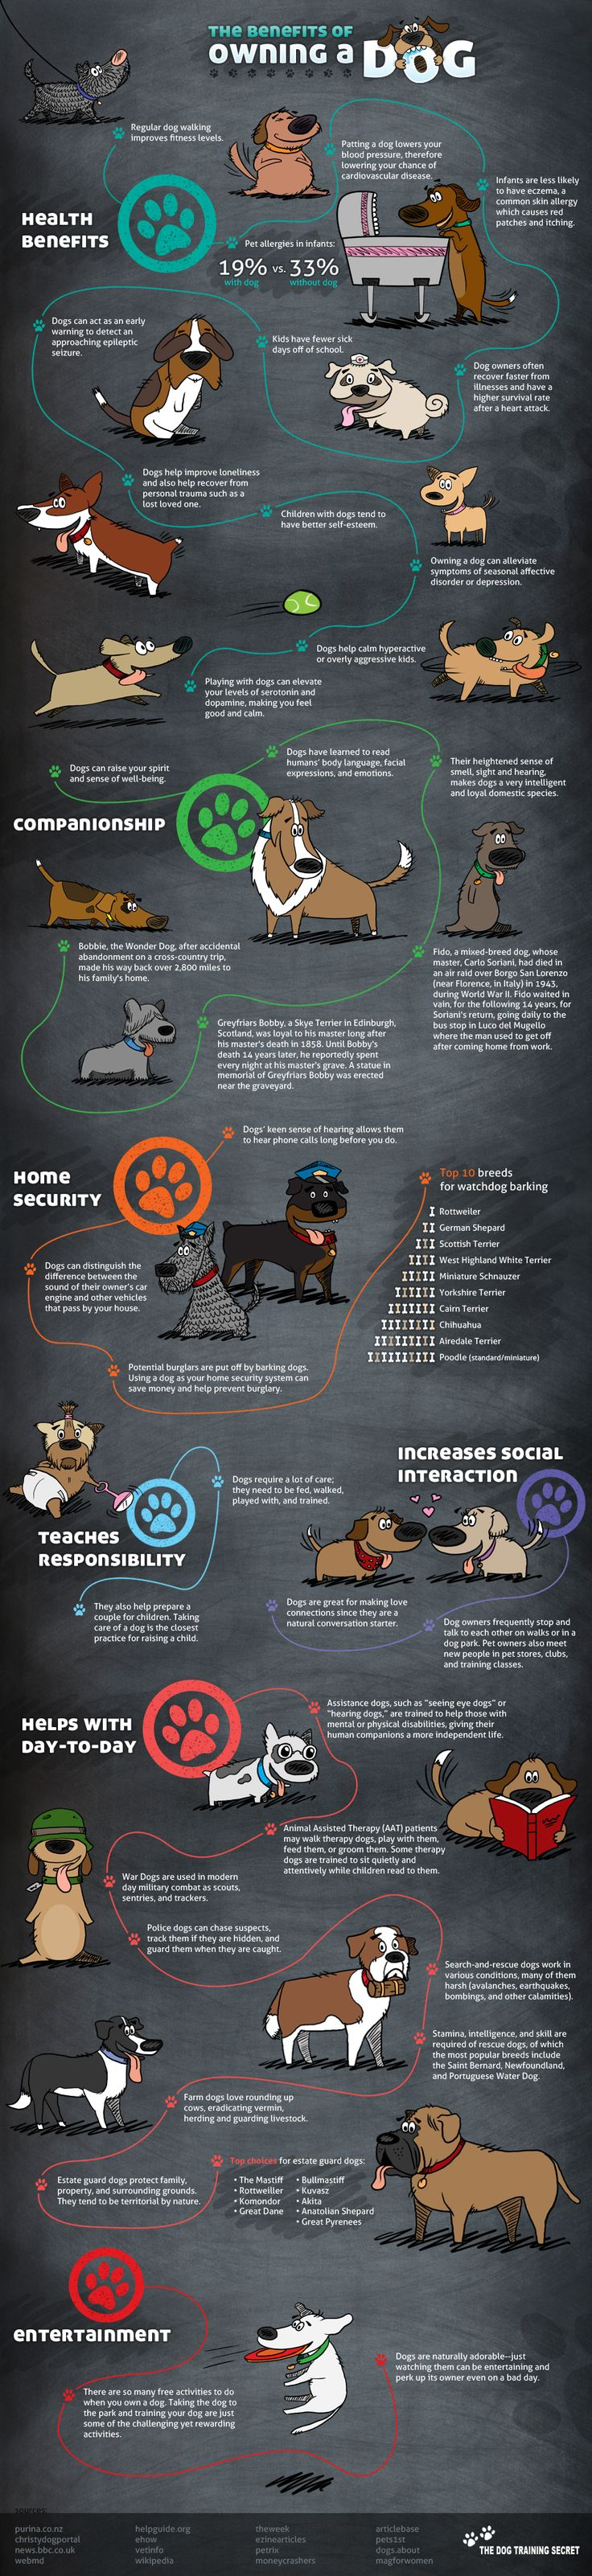 Dog Infographic - See more cool puppies & dogs training infographics at TrainMyPuppies.com